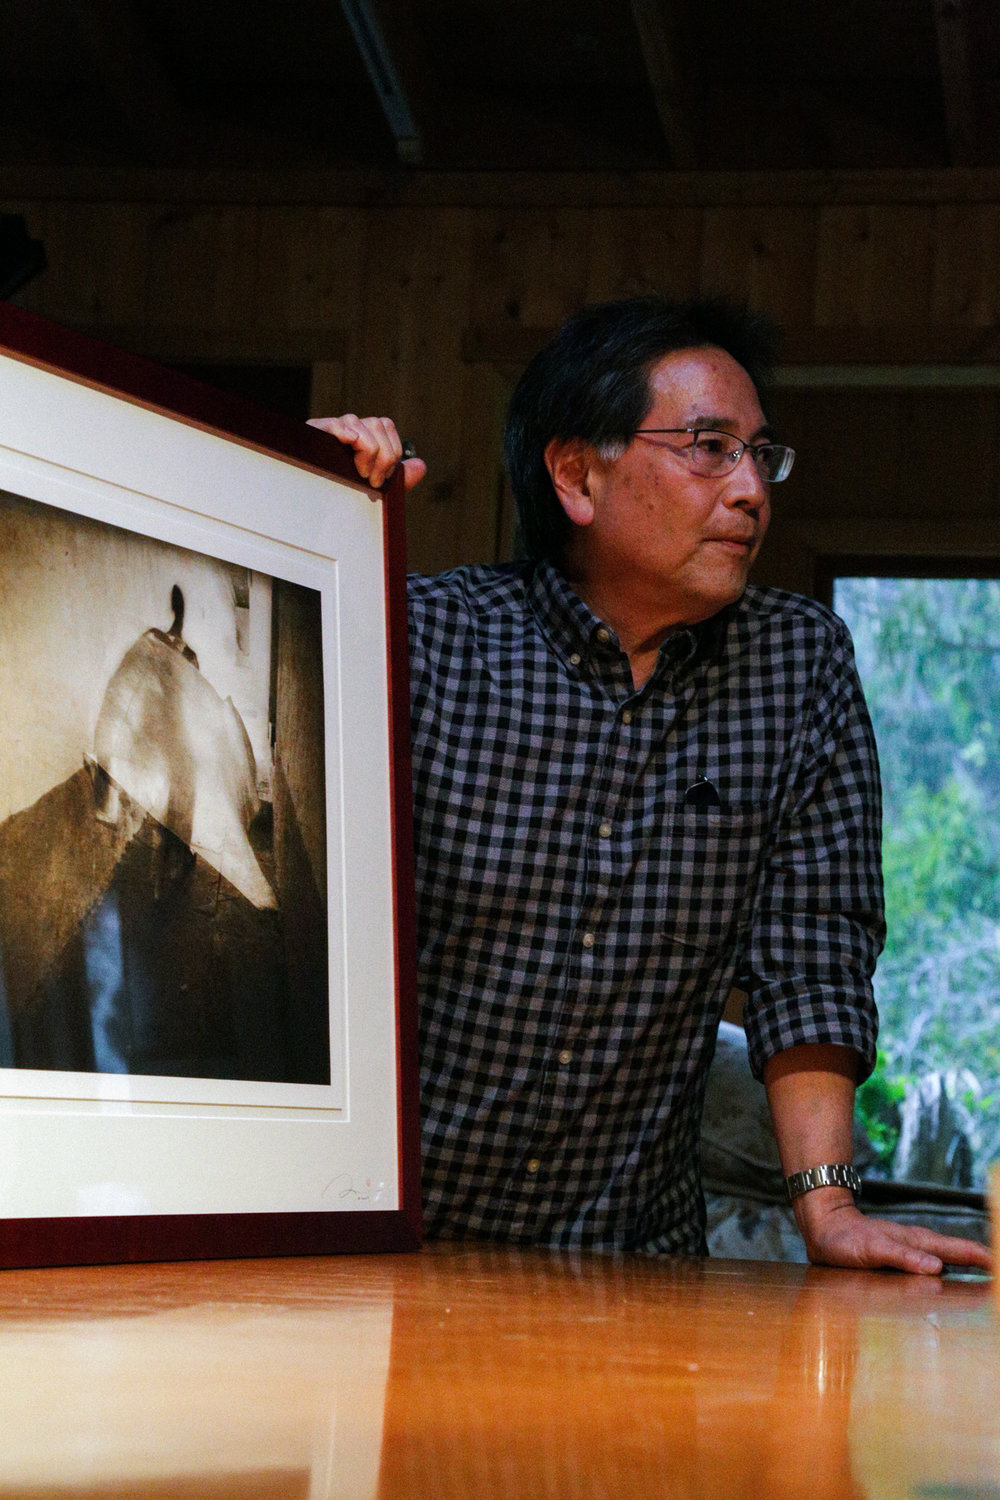 Rick Murai shows his work to Weston Photography Workshop participants in the gallery on Wildcat Hill.  Photo by Annabelle Scott